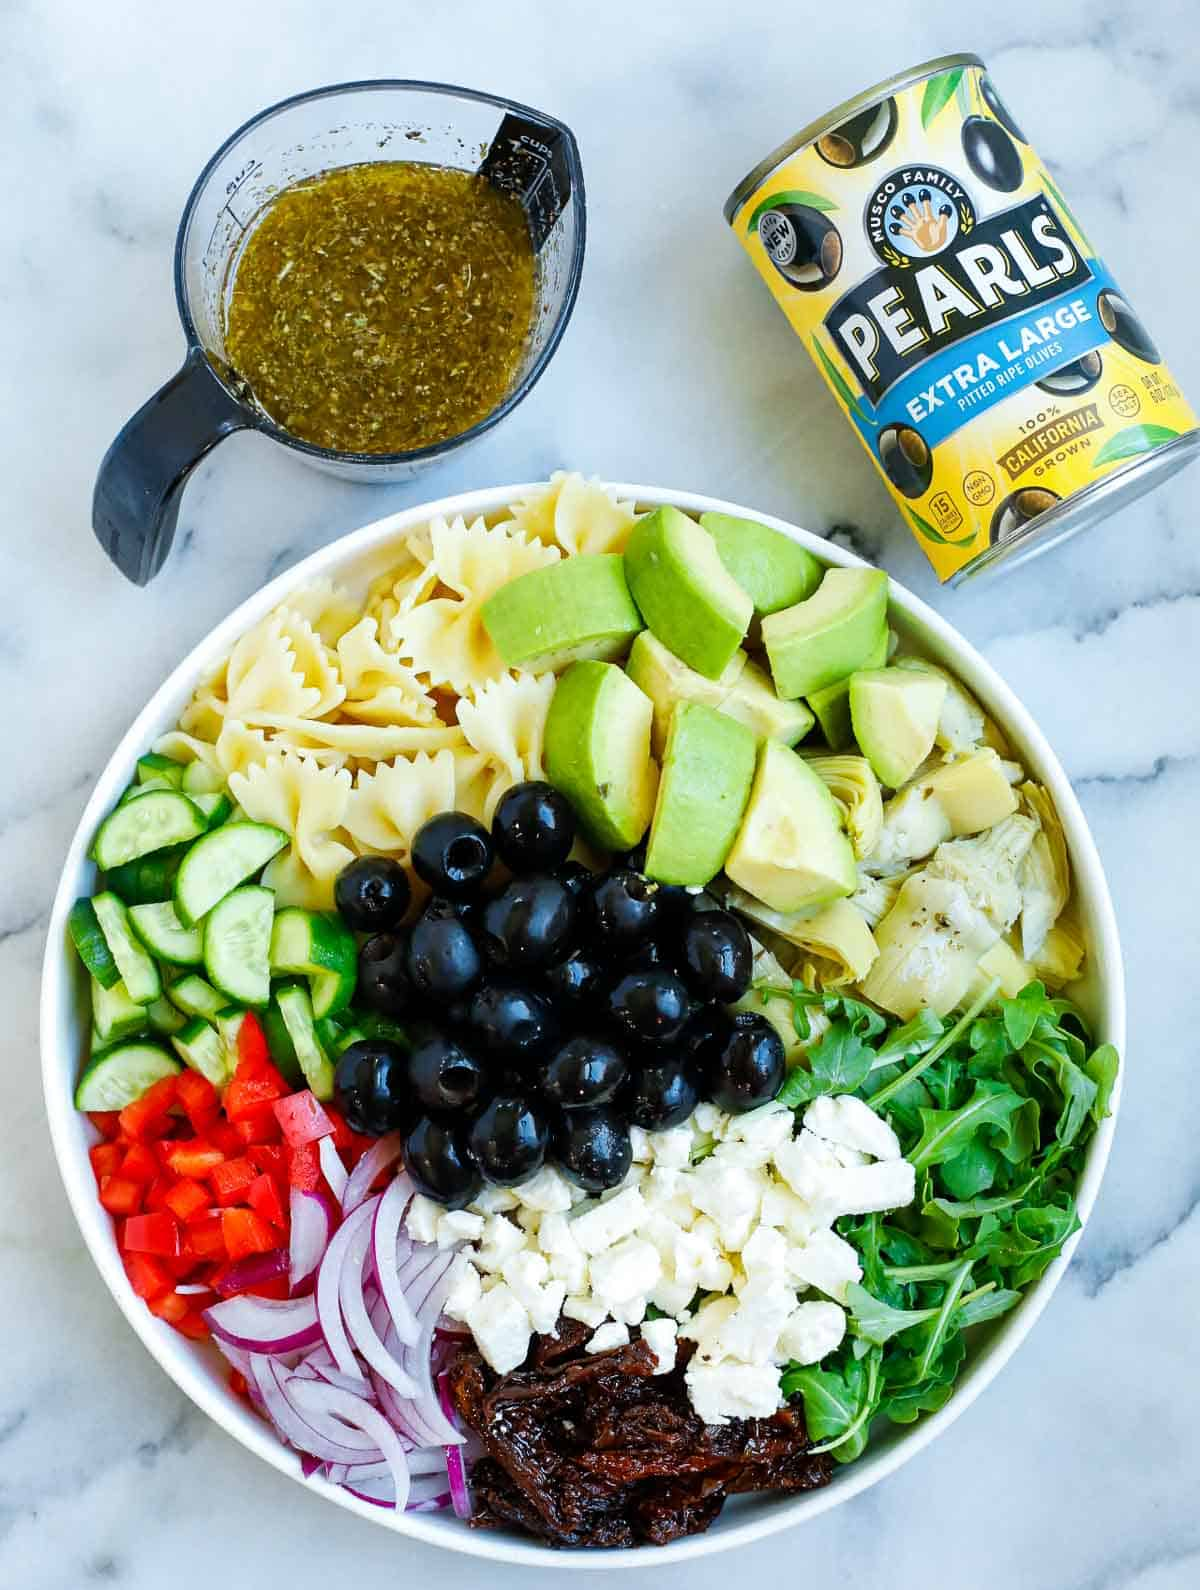 Ingredients for the pasta salad in a bowl before adding the dressing.